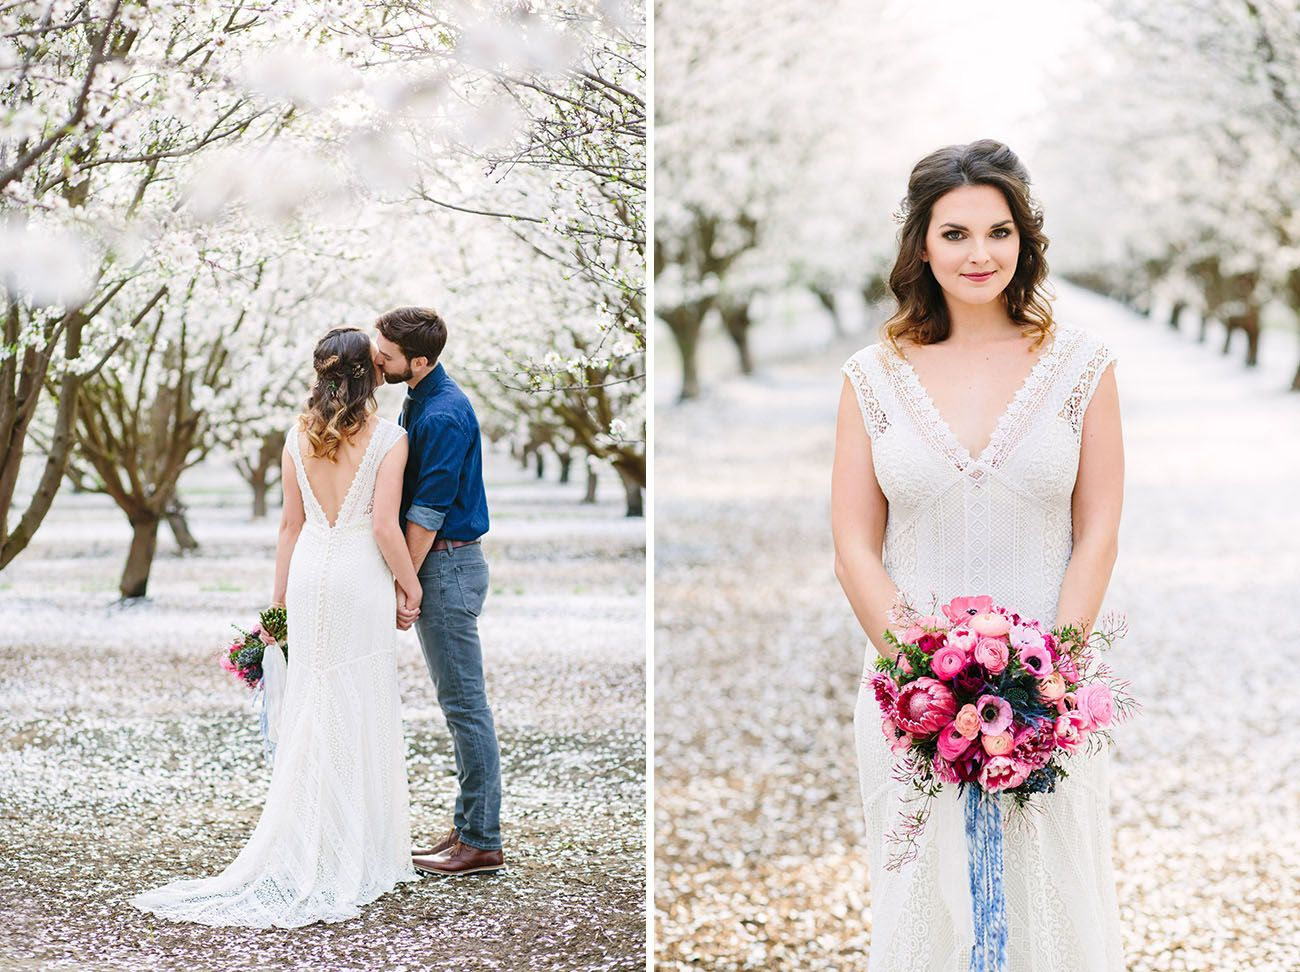 Modern bohemian wedding inspiration in the almond orchards